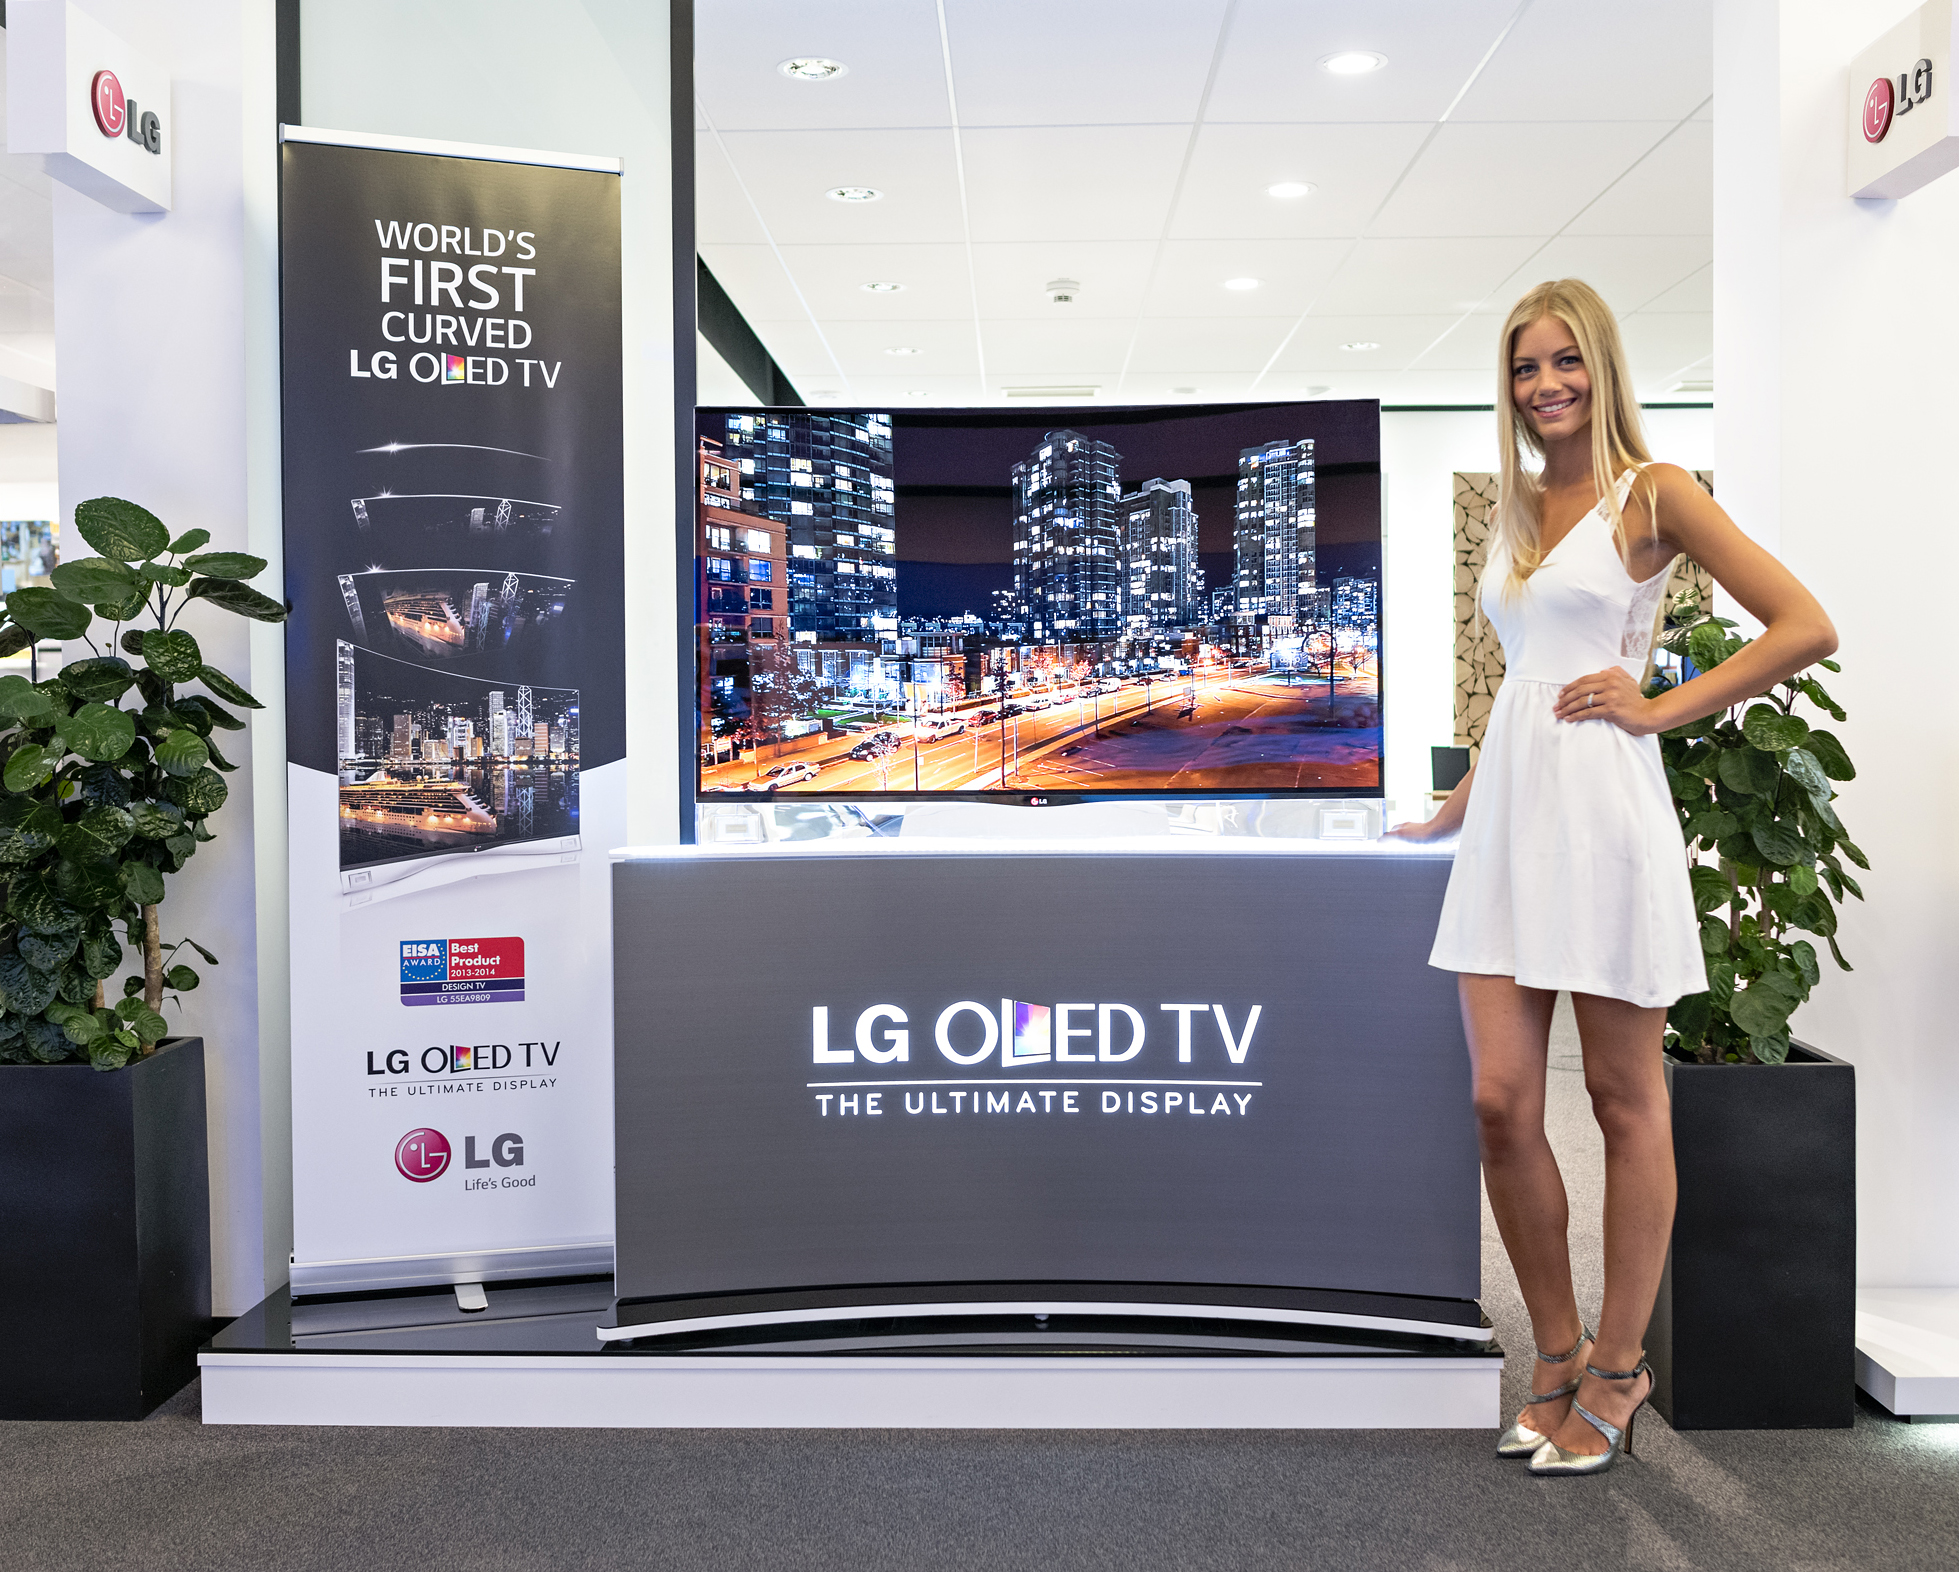 A model is demonstrating LG CURVED OLED TV model 55EA9800